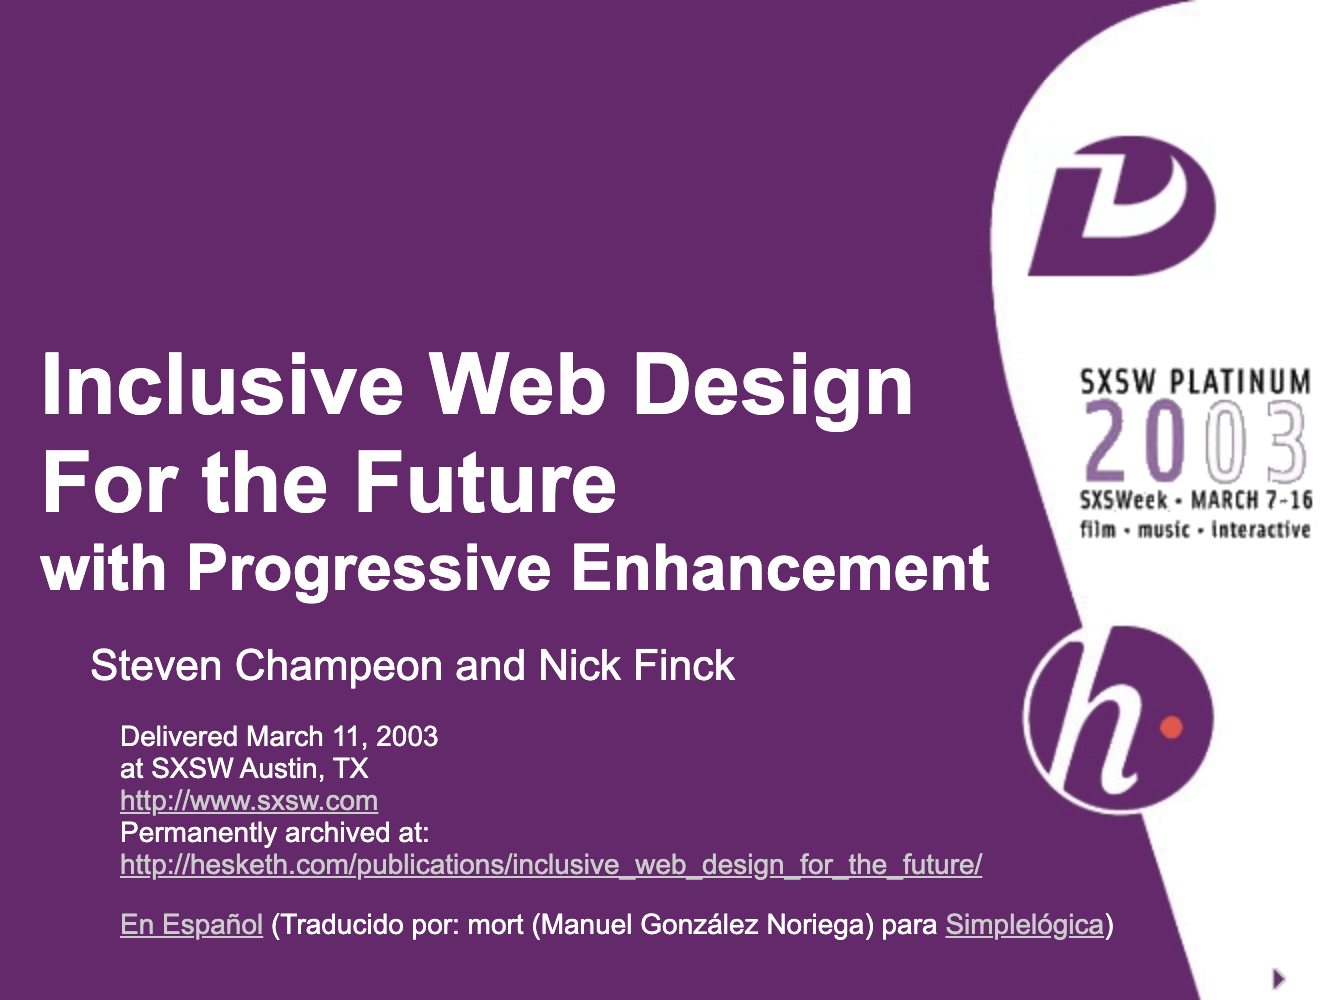 Inclusive web design for the future with progressive enhancement. Title slide from Finck and Champeon's original presentation.